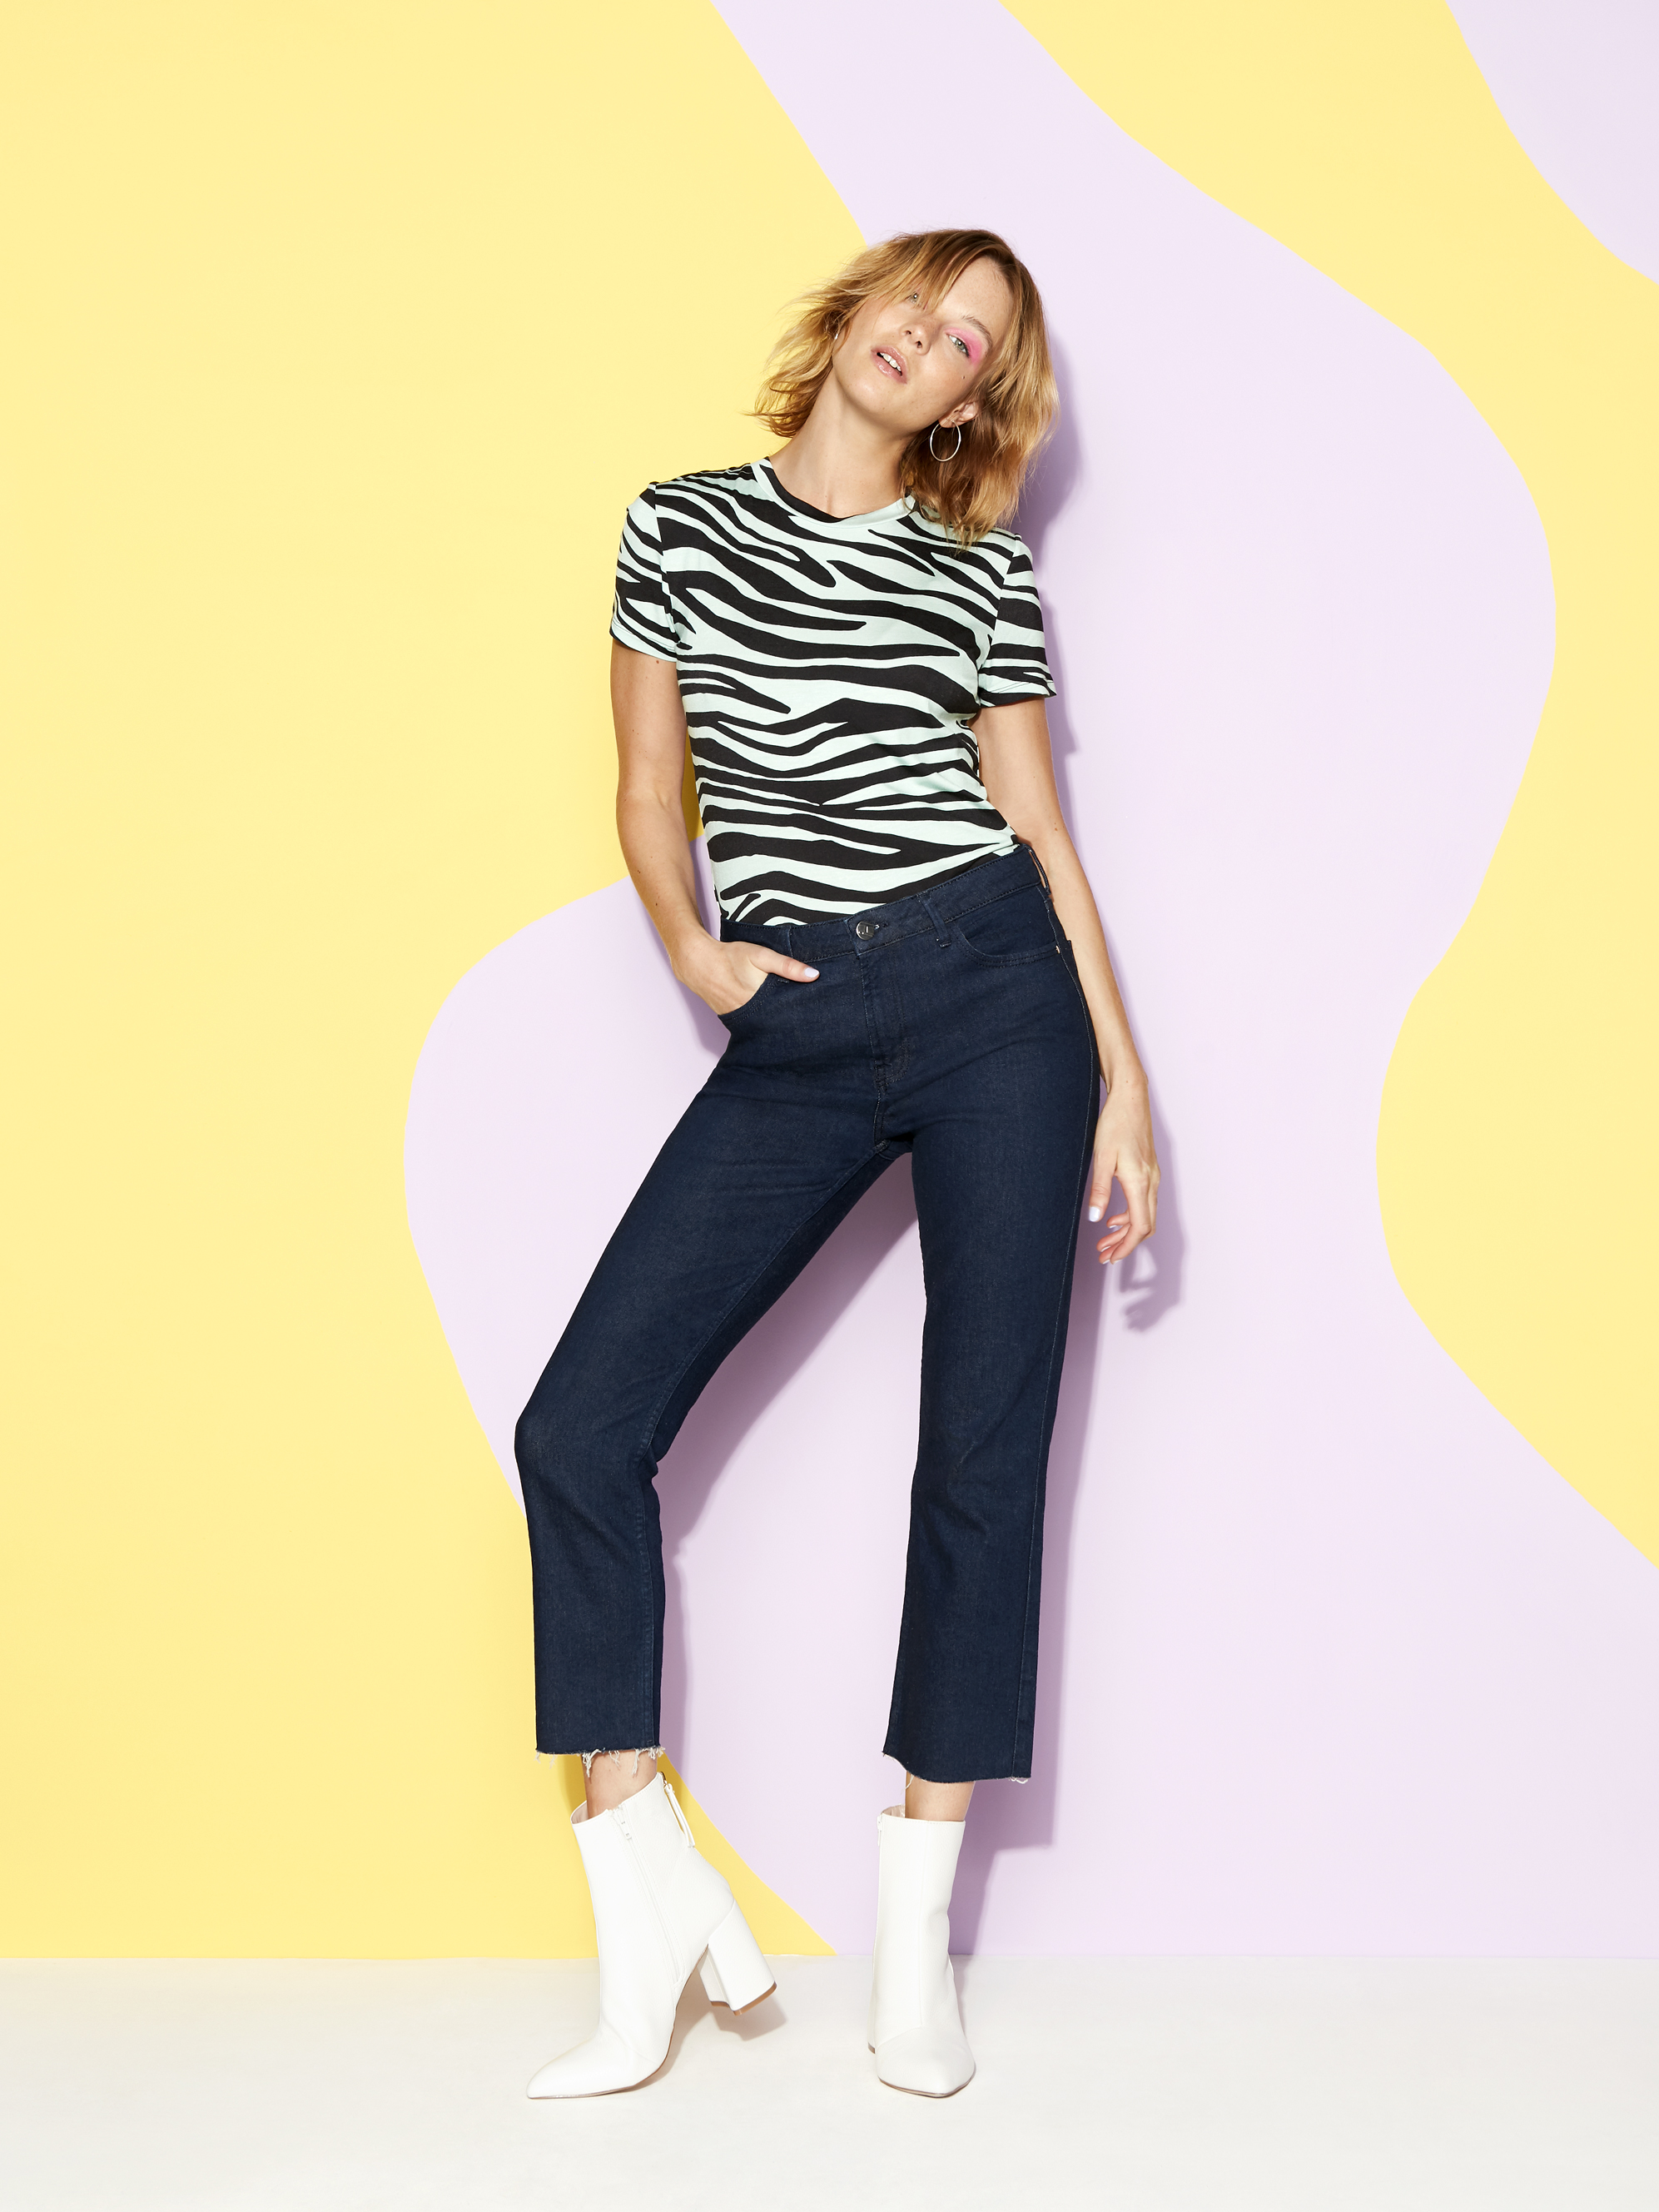 DEBENHAMS 2018_05_18_00_HENRY HOLLAND WW_FRANZIE0934.jpg